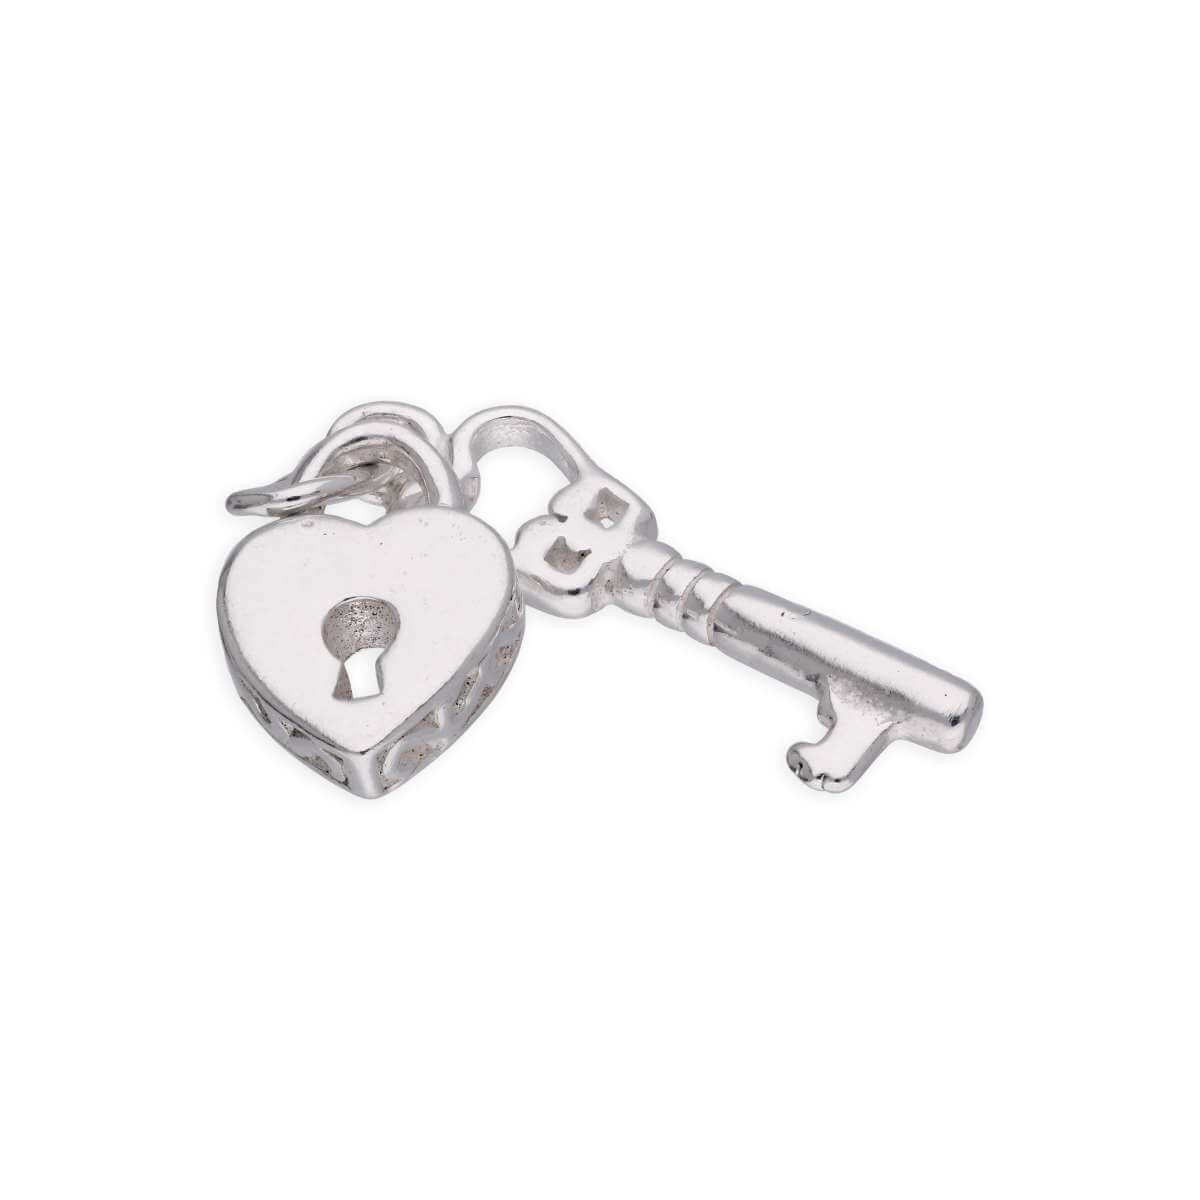 Small Sterling Silver Heart Padlock Key Charm